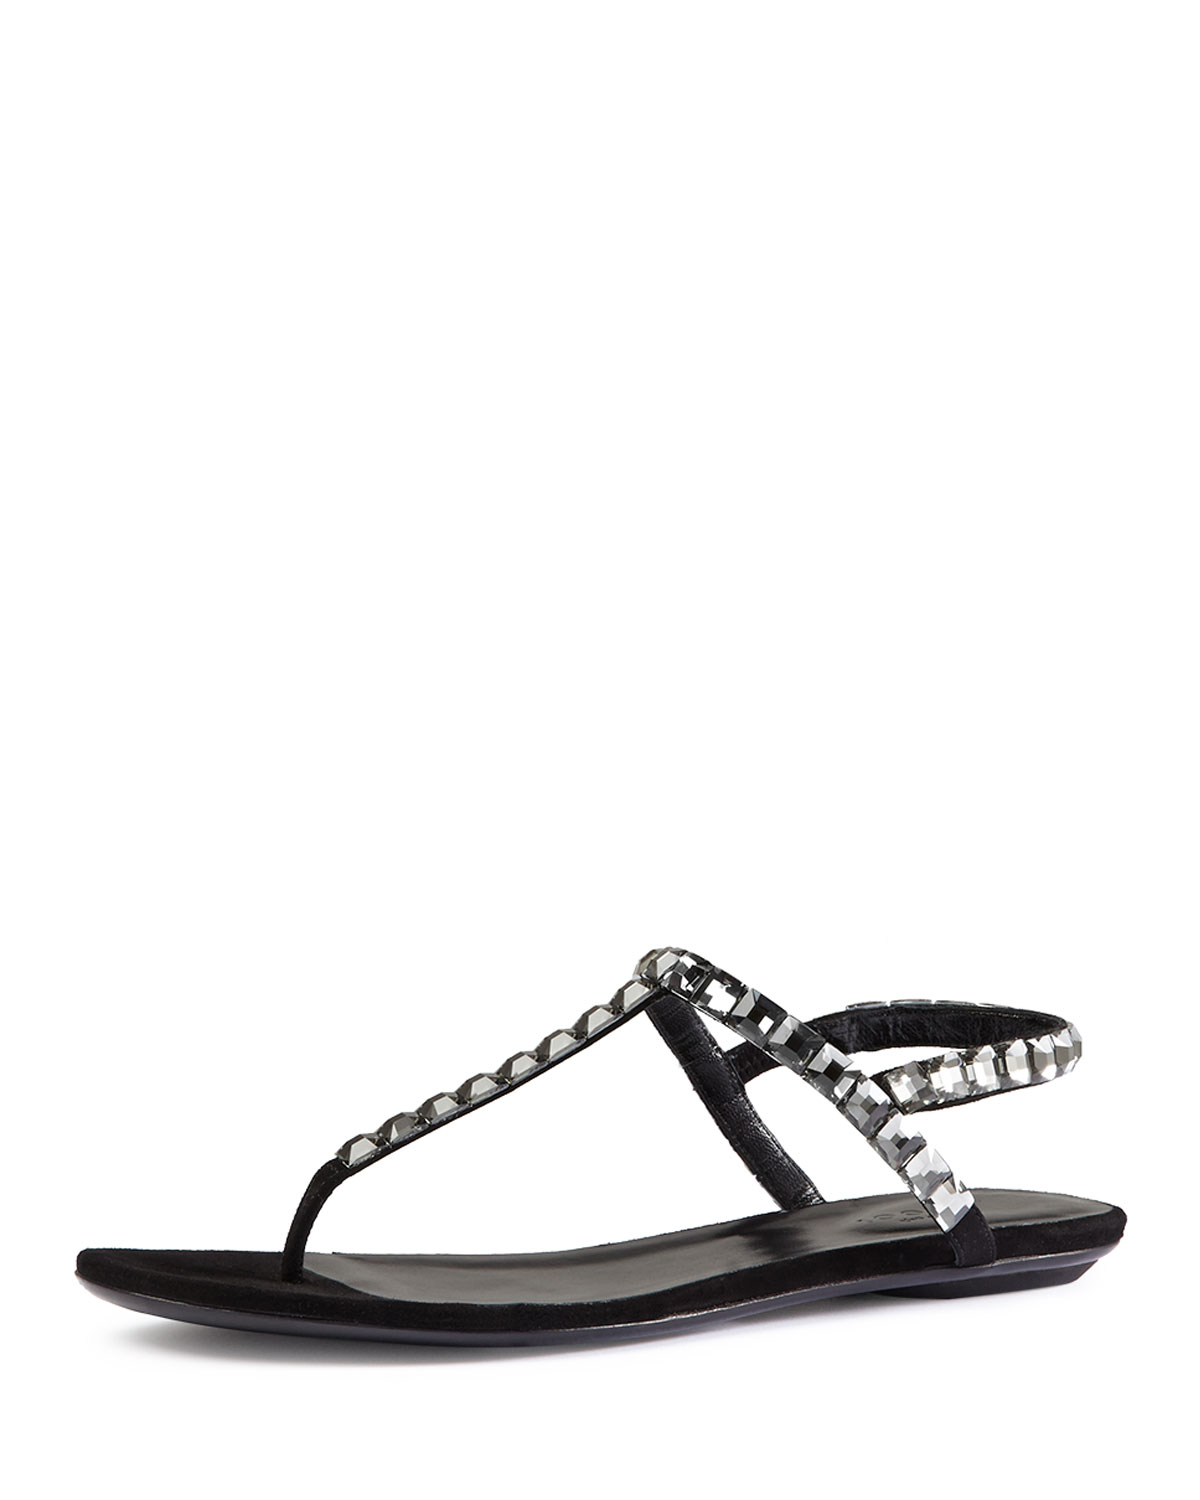 d28607c9859 Gucci Mallory Crystal-Embellished Suede Thong Sandal